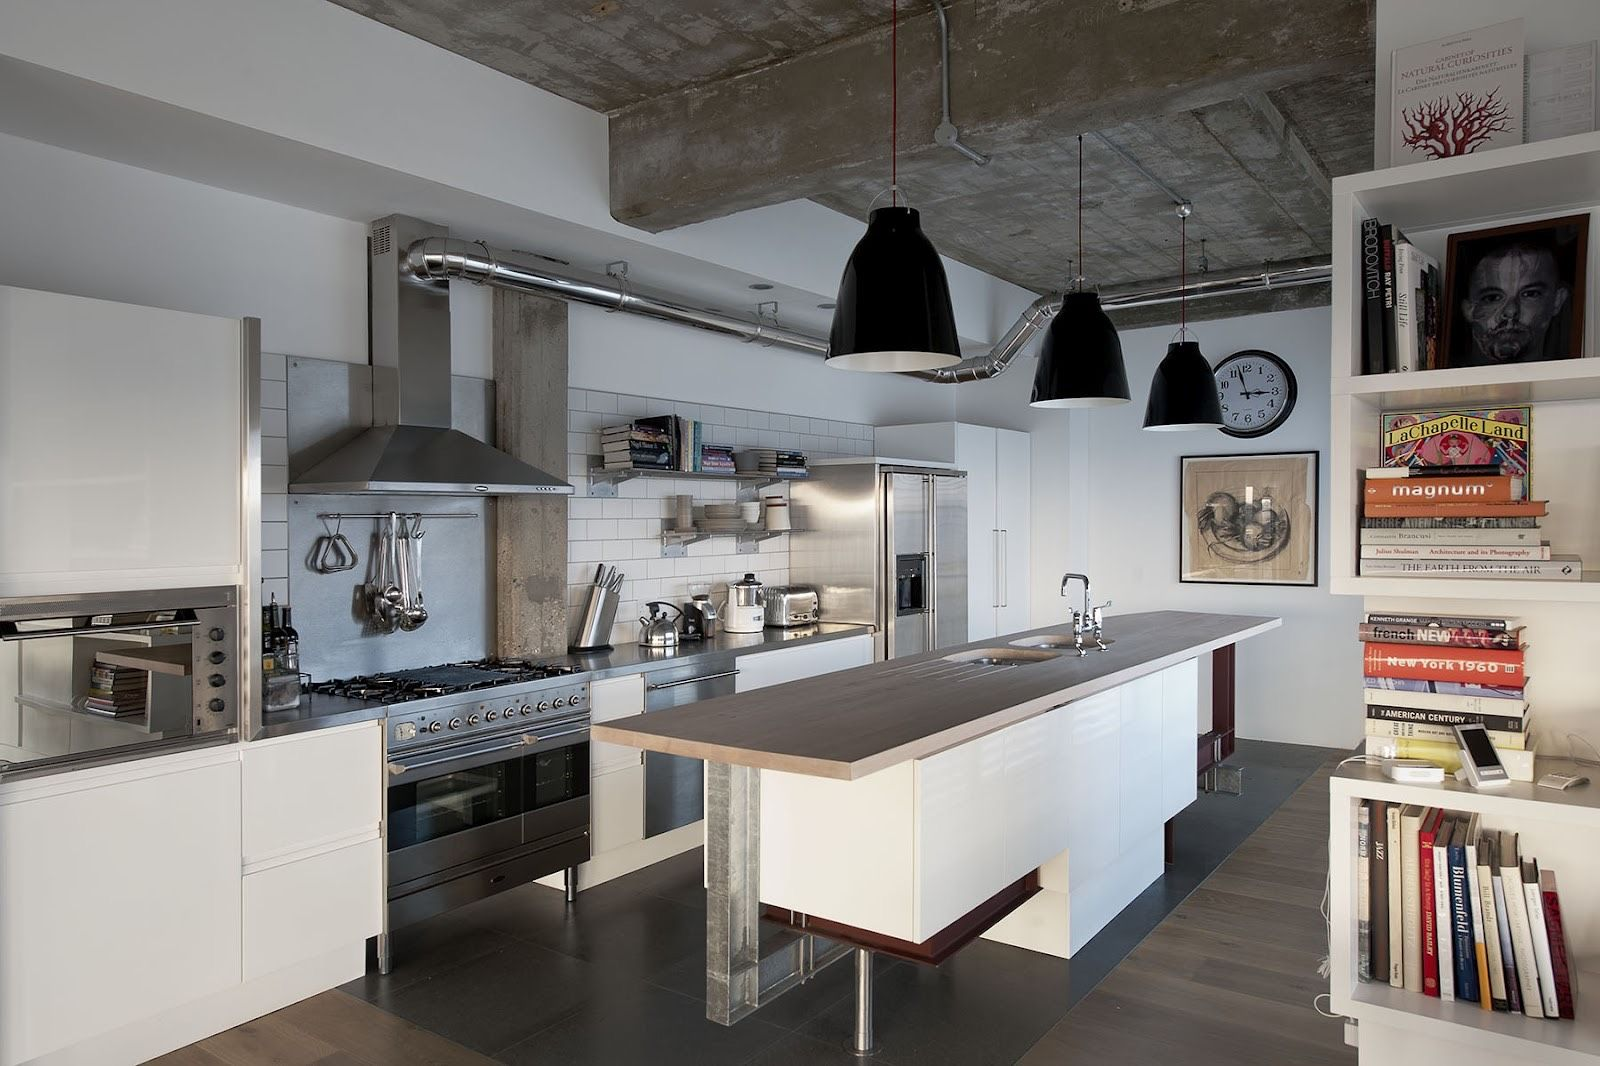 Sleek White Kitchen Cabinets In An Industrial Kitchen With Wooden Accents Industrial Decor Kitchen Industrial Kitchen Design Industrial Chic Kitchen